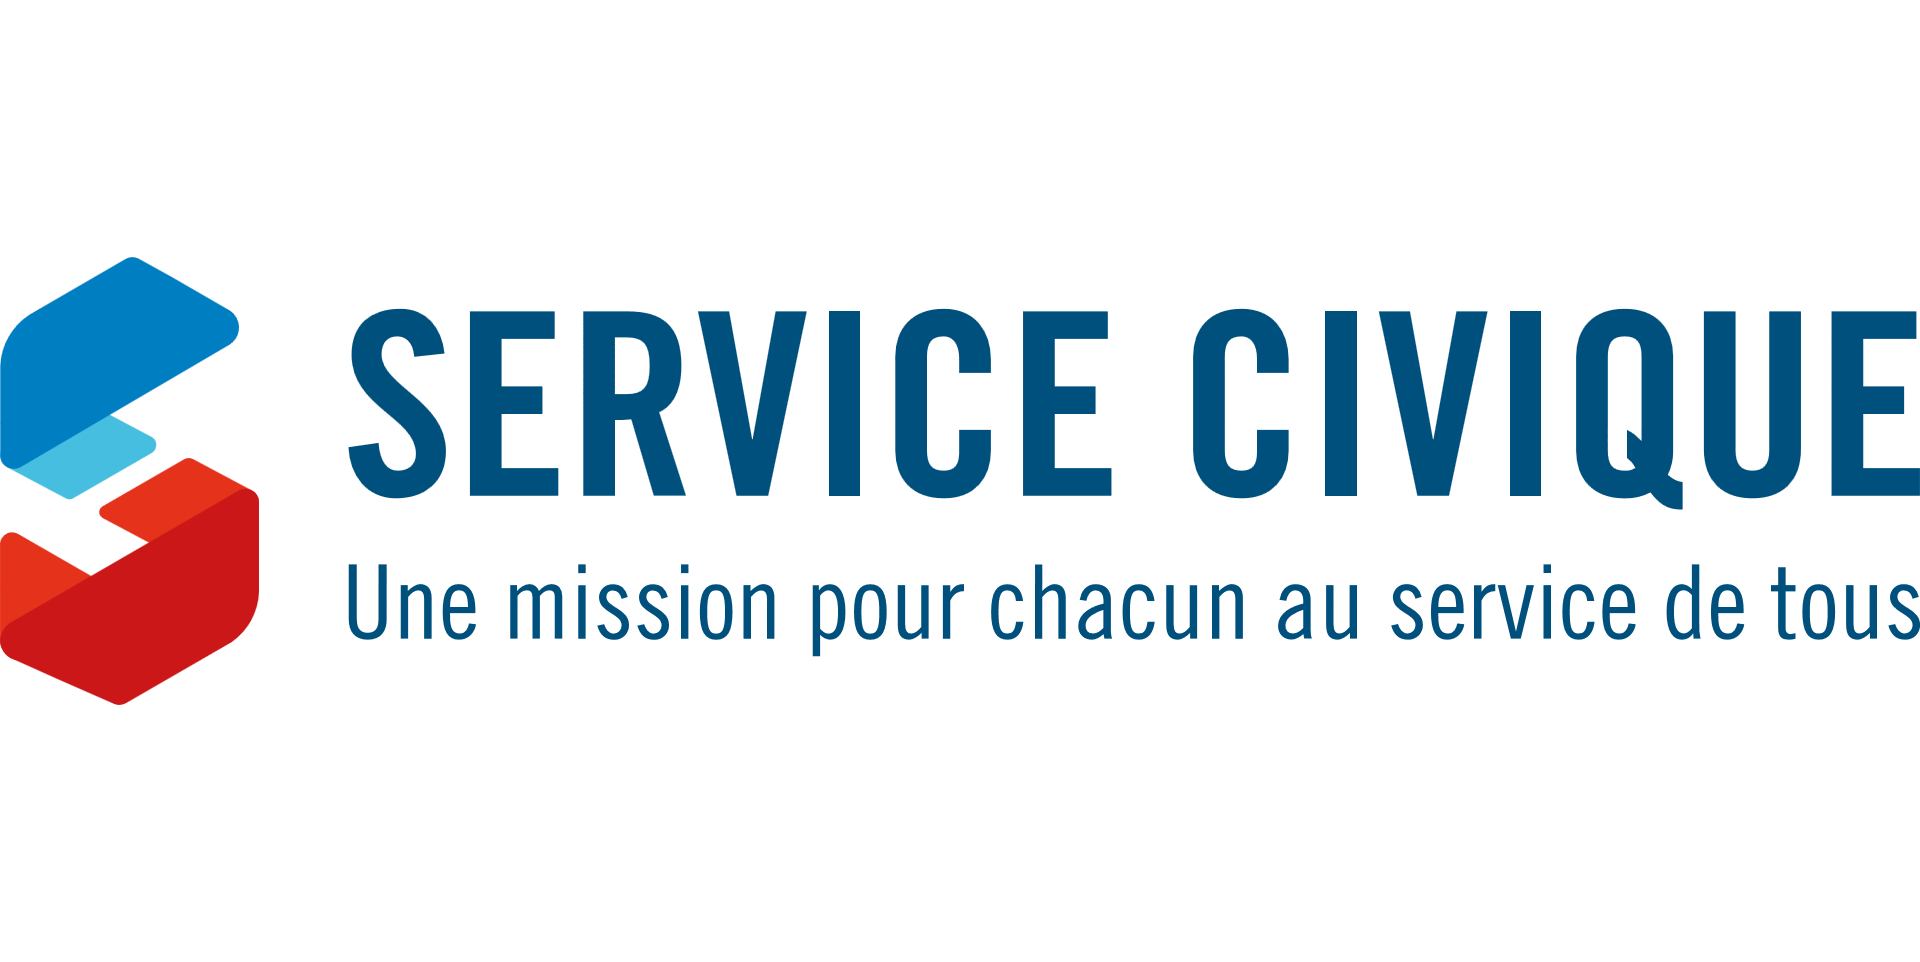 Etat - Agence nationale du service civique